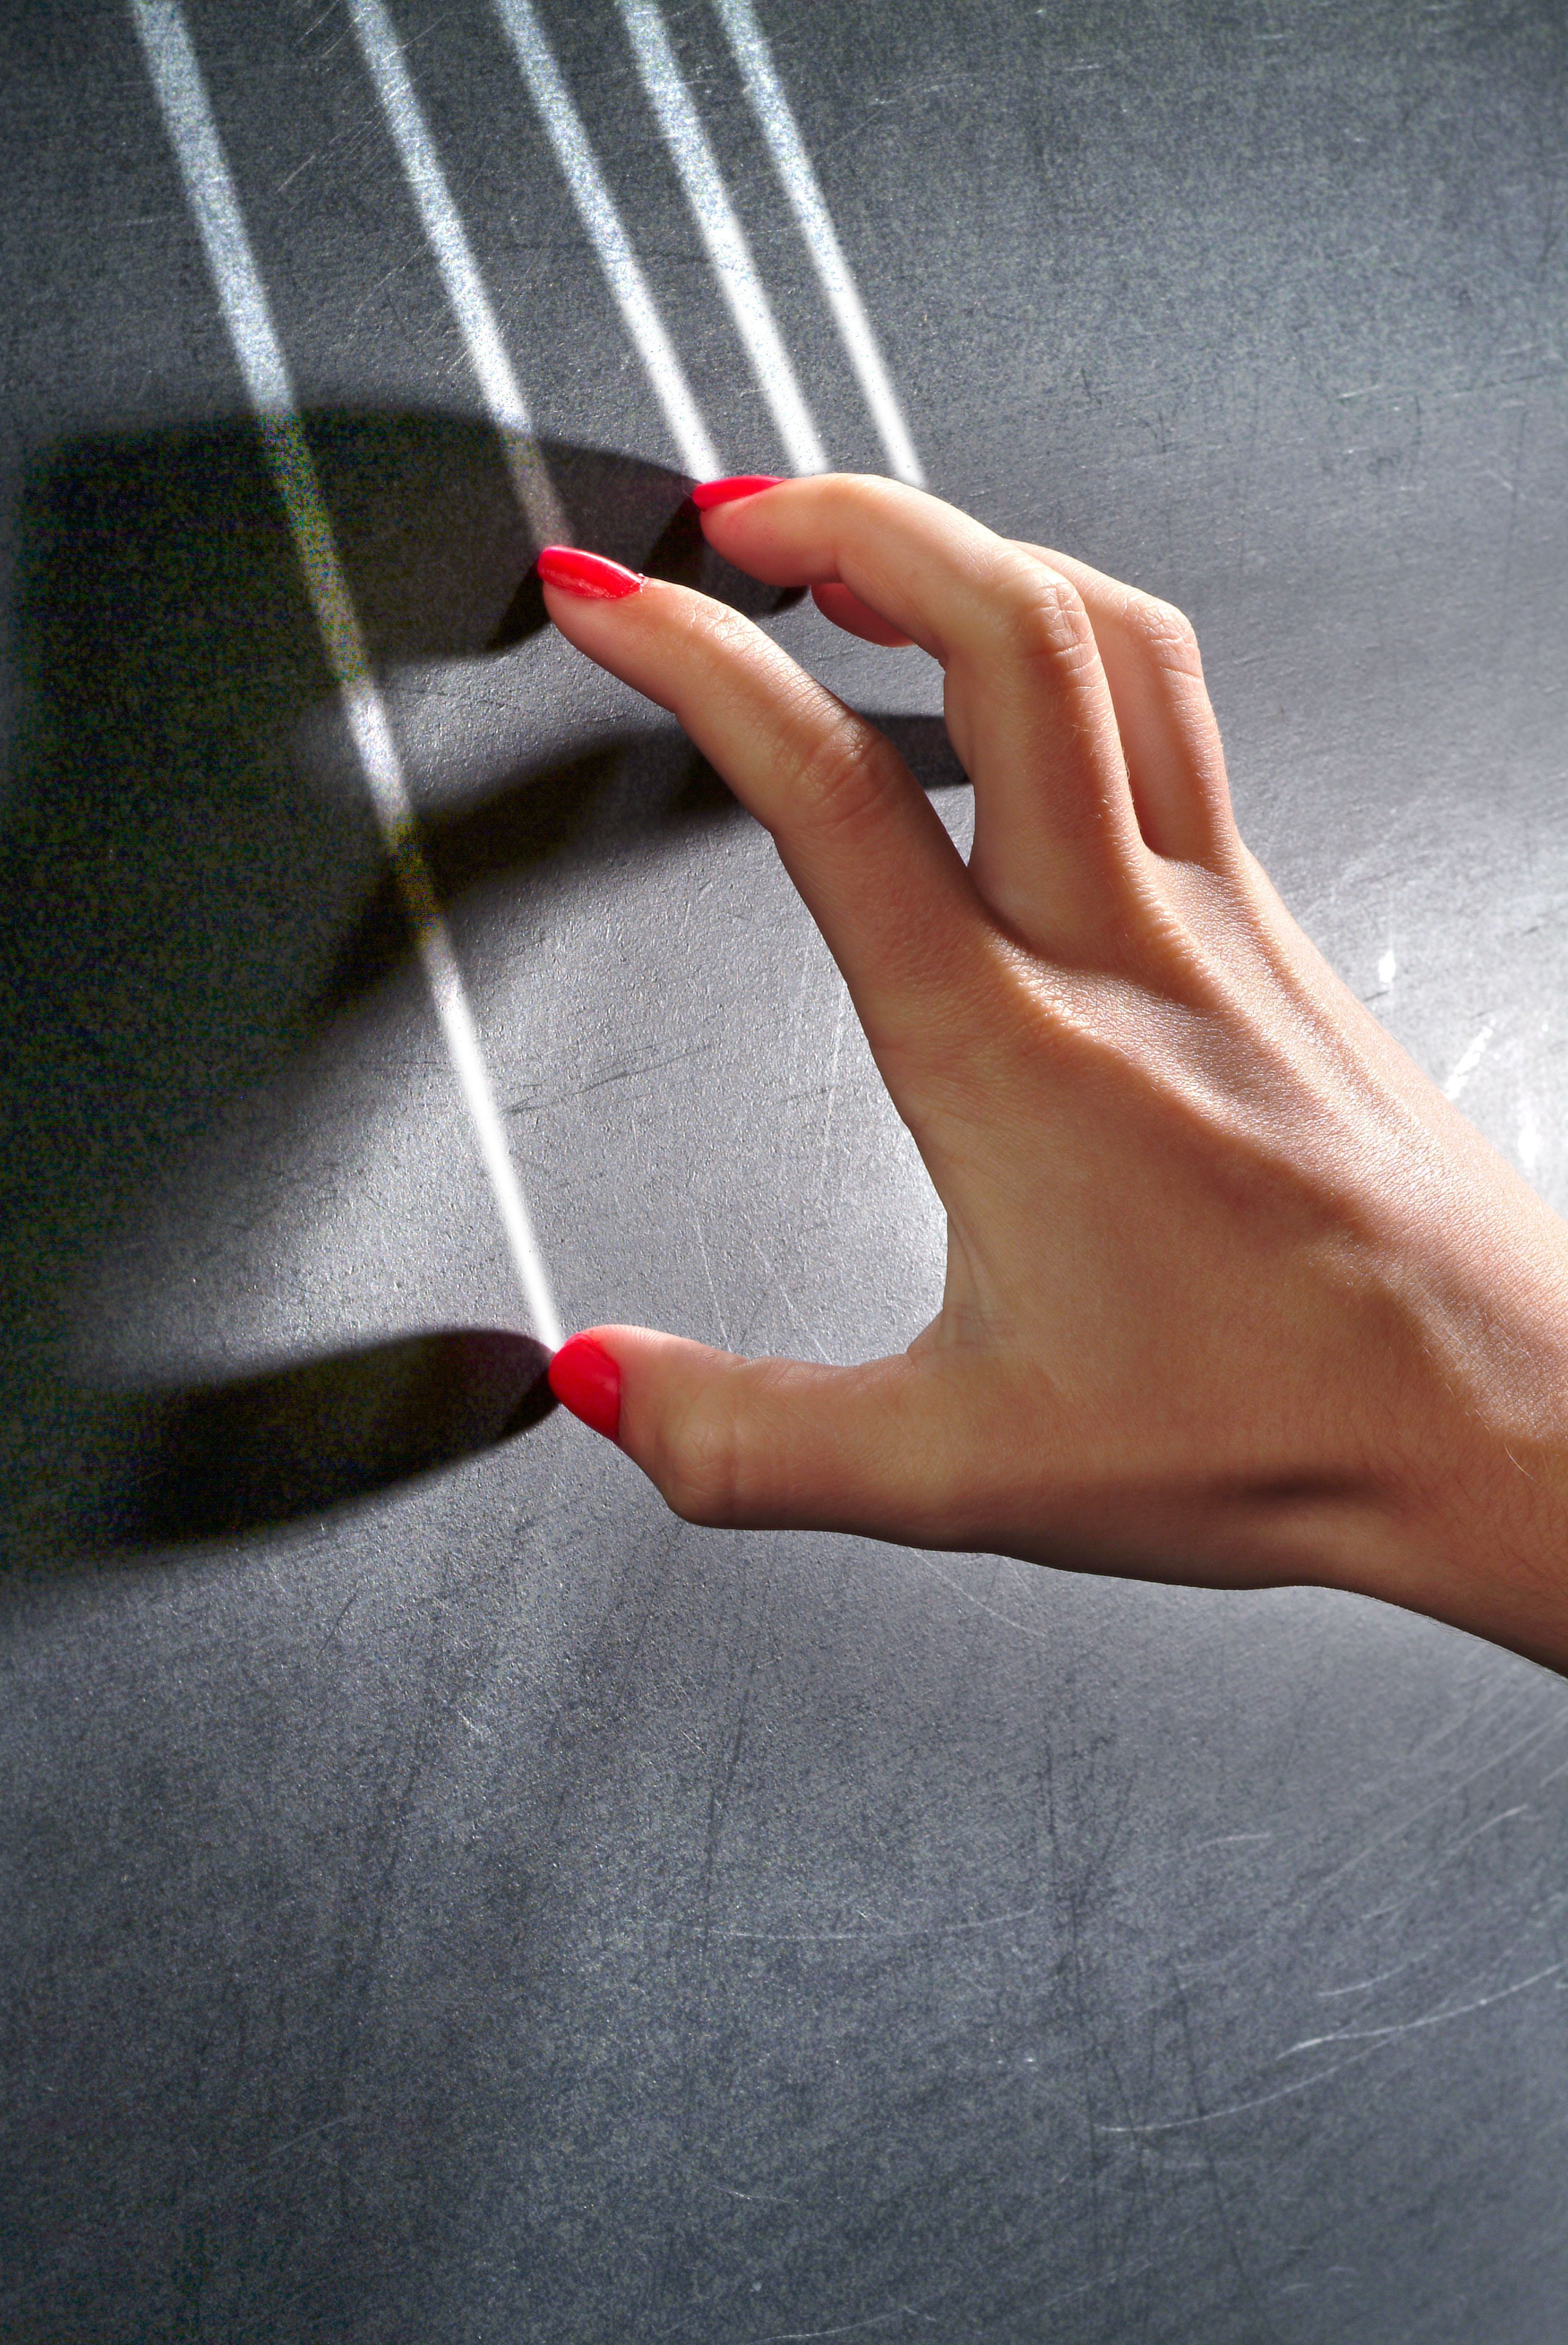 Nails On Chalkboard, Similar Sounds Amplified In Ear Canal